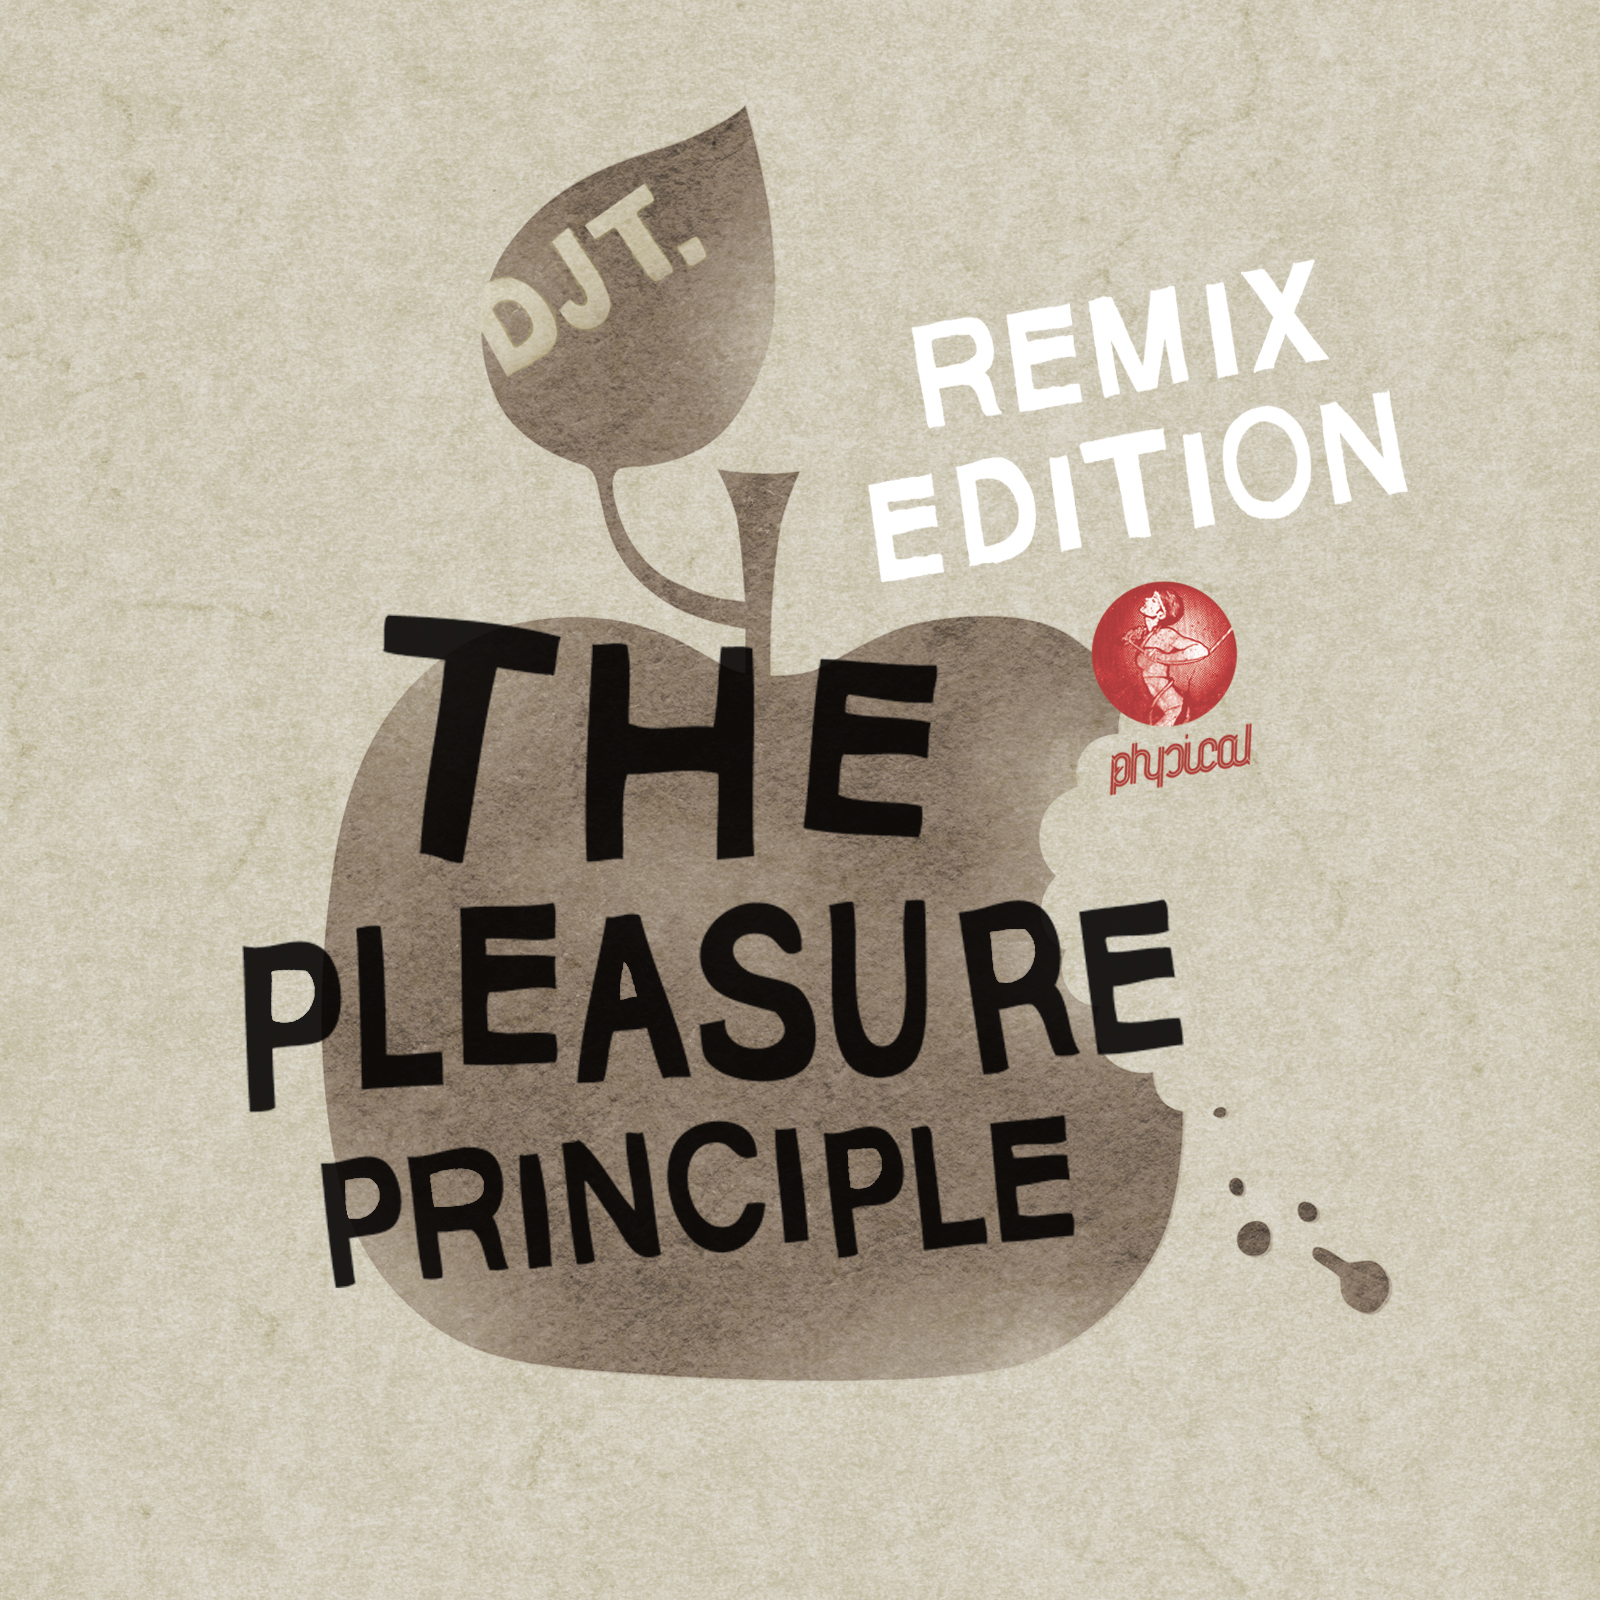 DJ T - The pleasure principle (Remix Edition)